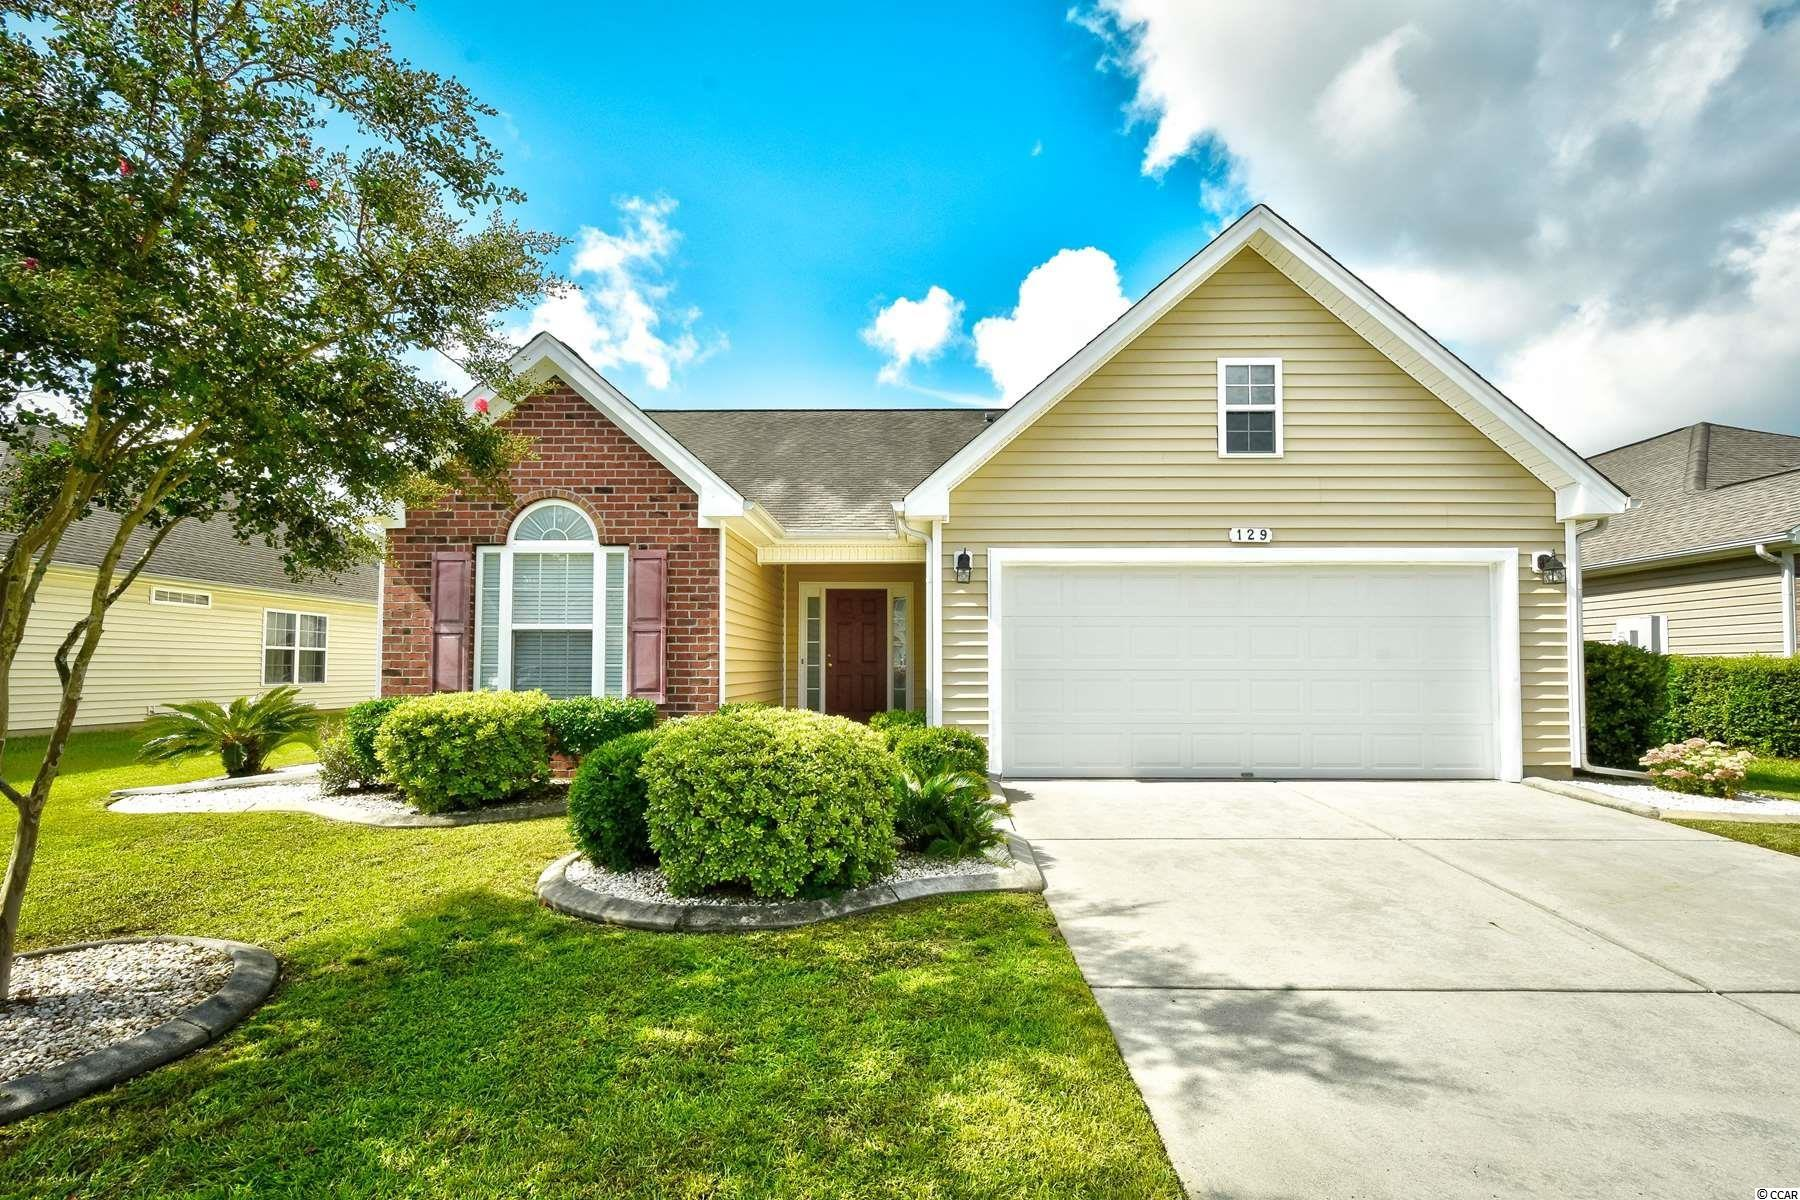 Welcome home to this 3 bedroom, 2 bathroom home in the quiet, golf course community of Arrowhead. This home can be sold fully furnished,features a spacious open floor plan of the main living areas with tall vaulted ceilings and luxurious dark wood flooring throughout. The kitchen is equipped with all appliances, granite countertops, a pantry for extra storage, and the perfect breakfast bar. Just off the kitchen and living areas is a grand archway leading to a Carolina room that can be used as an office, formal dining area, or additional living area. Each bedroom features a ceiling fan, plenty of closet space, and easy access to a bathroom, while the master continues the tall vaulted ceilings and offers room for a seating area, a large walk in closet, and private master bath with double sink vanities, walk in shower, and a whirlpool tub. Spend your afternoons relaxing on the screened in back porch with windows that can turn it into a Carolina room, or spending time with the whole family in the fenced in backyard. Arrowhead offers great amenities including a community pool, tennis courts, clubhouse, and more. Conveniently located close to all of the Grand Strand's finest dining, shopping, golf, and entertainment attractions. This one is truly move in ready; you won't want to miss this. Schedule your showing today!